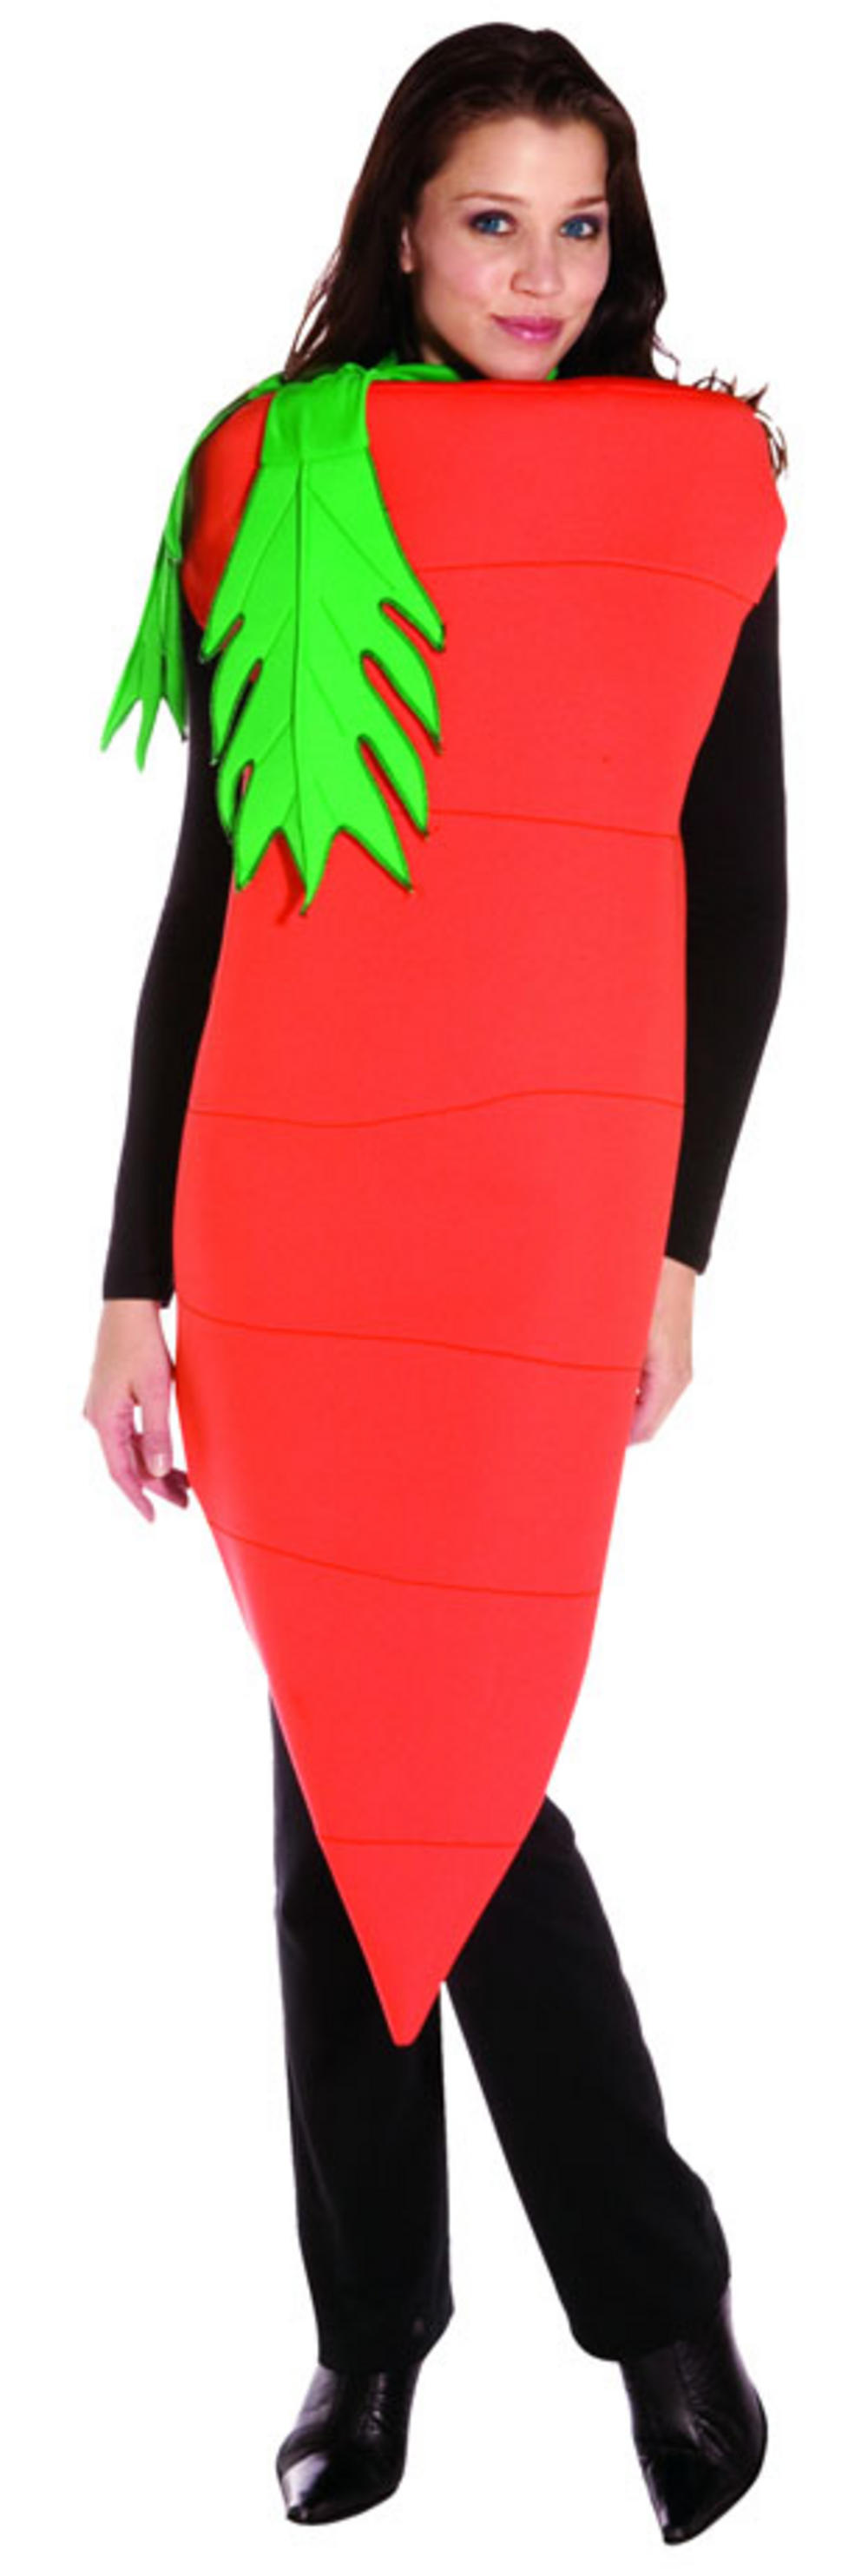 Giant Carrot Costume